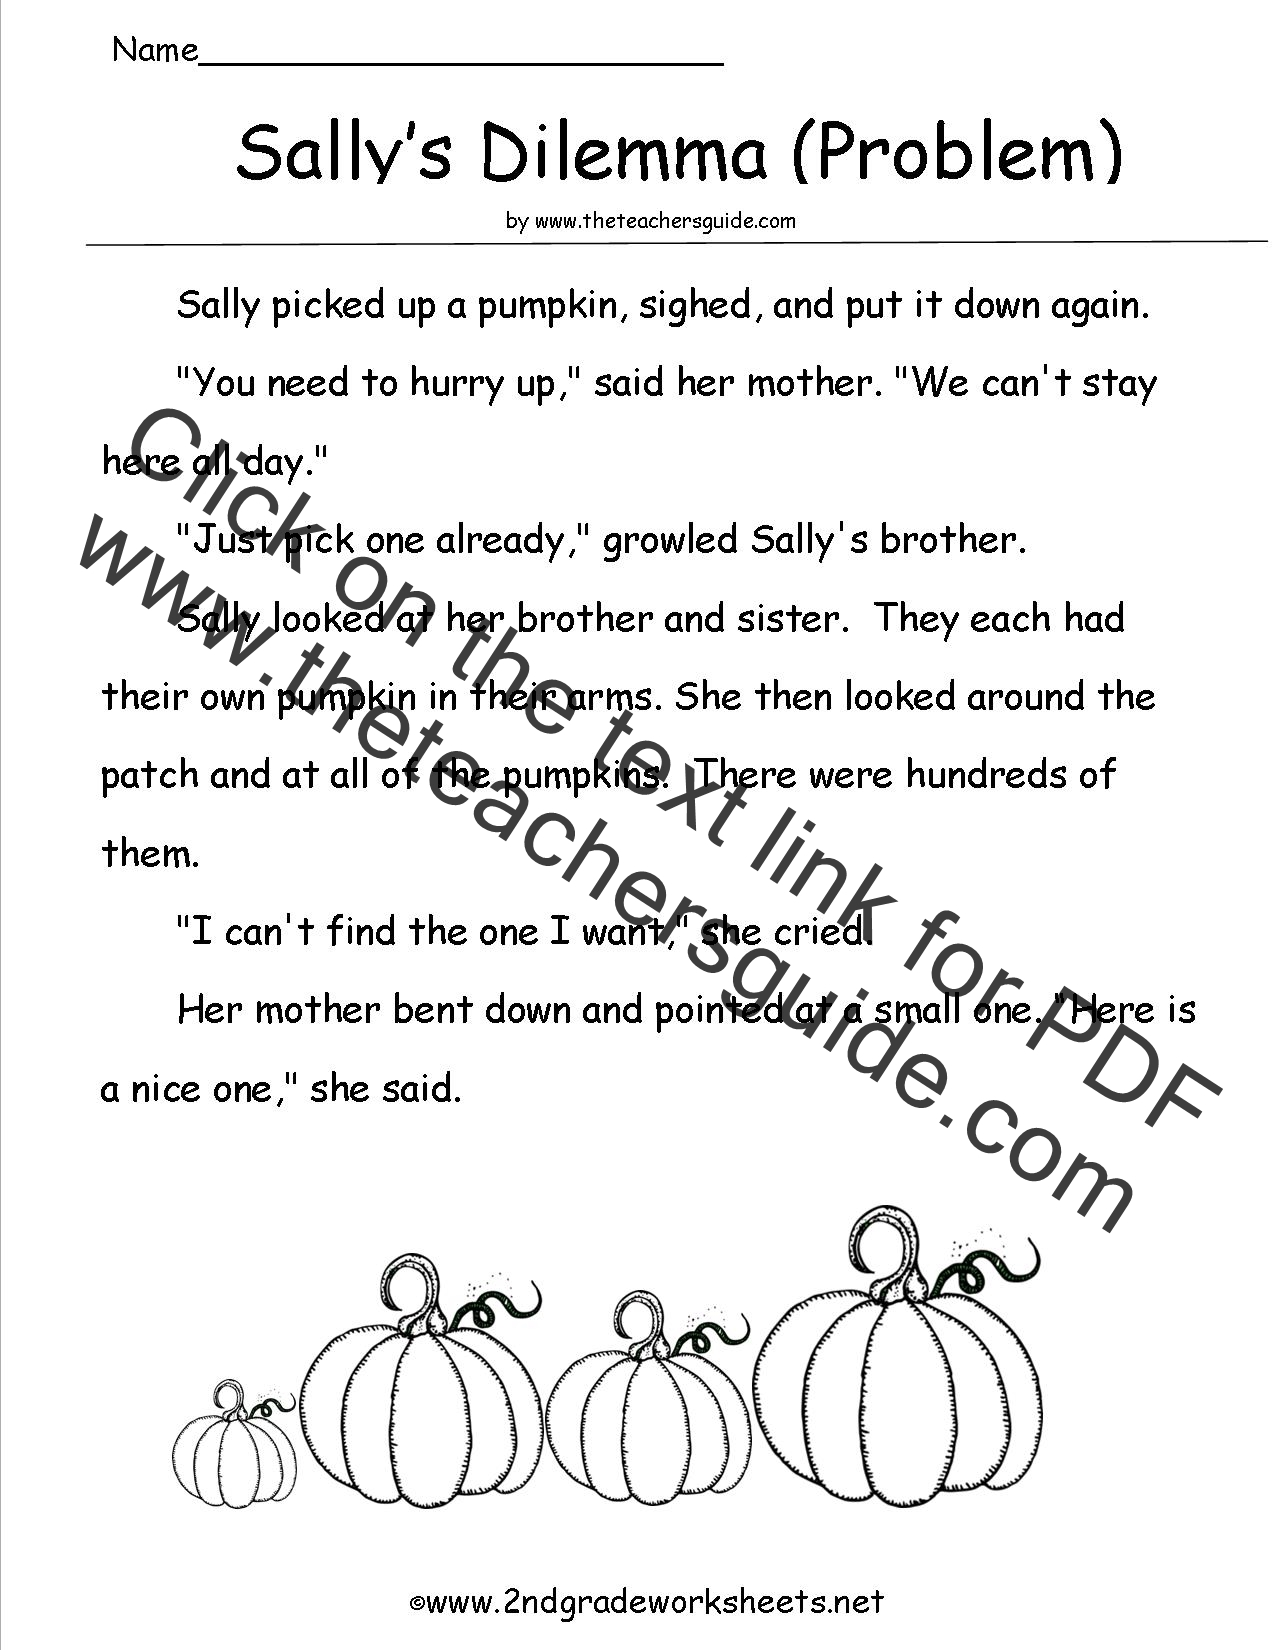 Worksheets Halloween Printable Worksheets halloween worksheets and printouts pumpkin comprehension paper